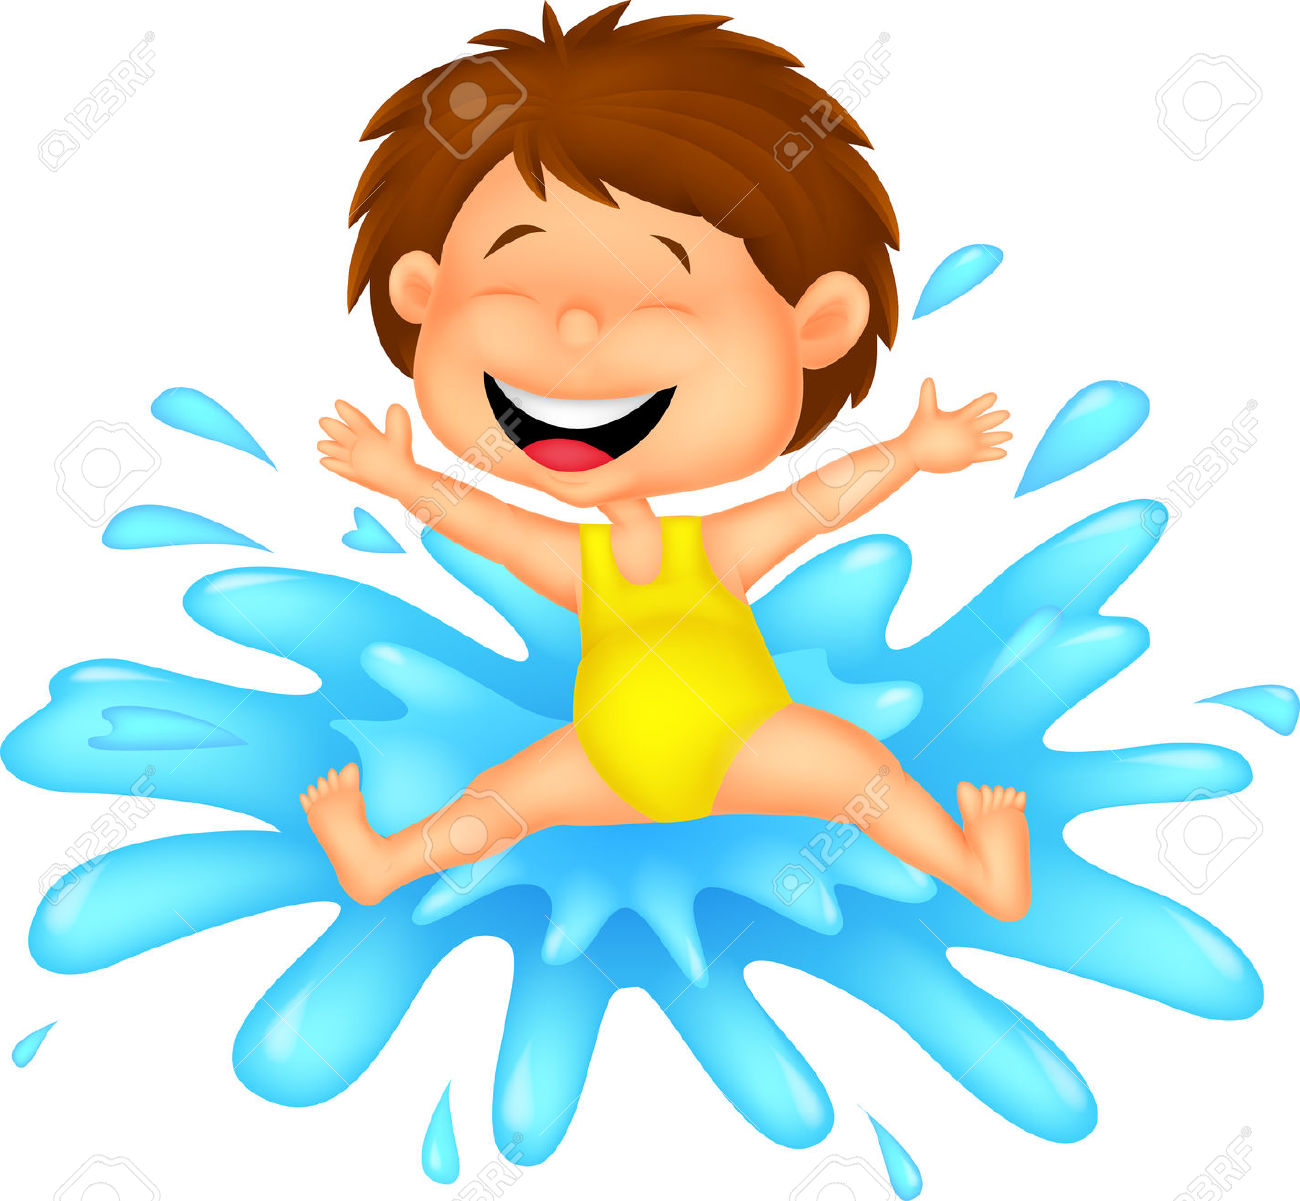 Water Play Clipart Images.